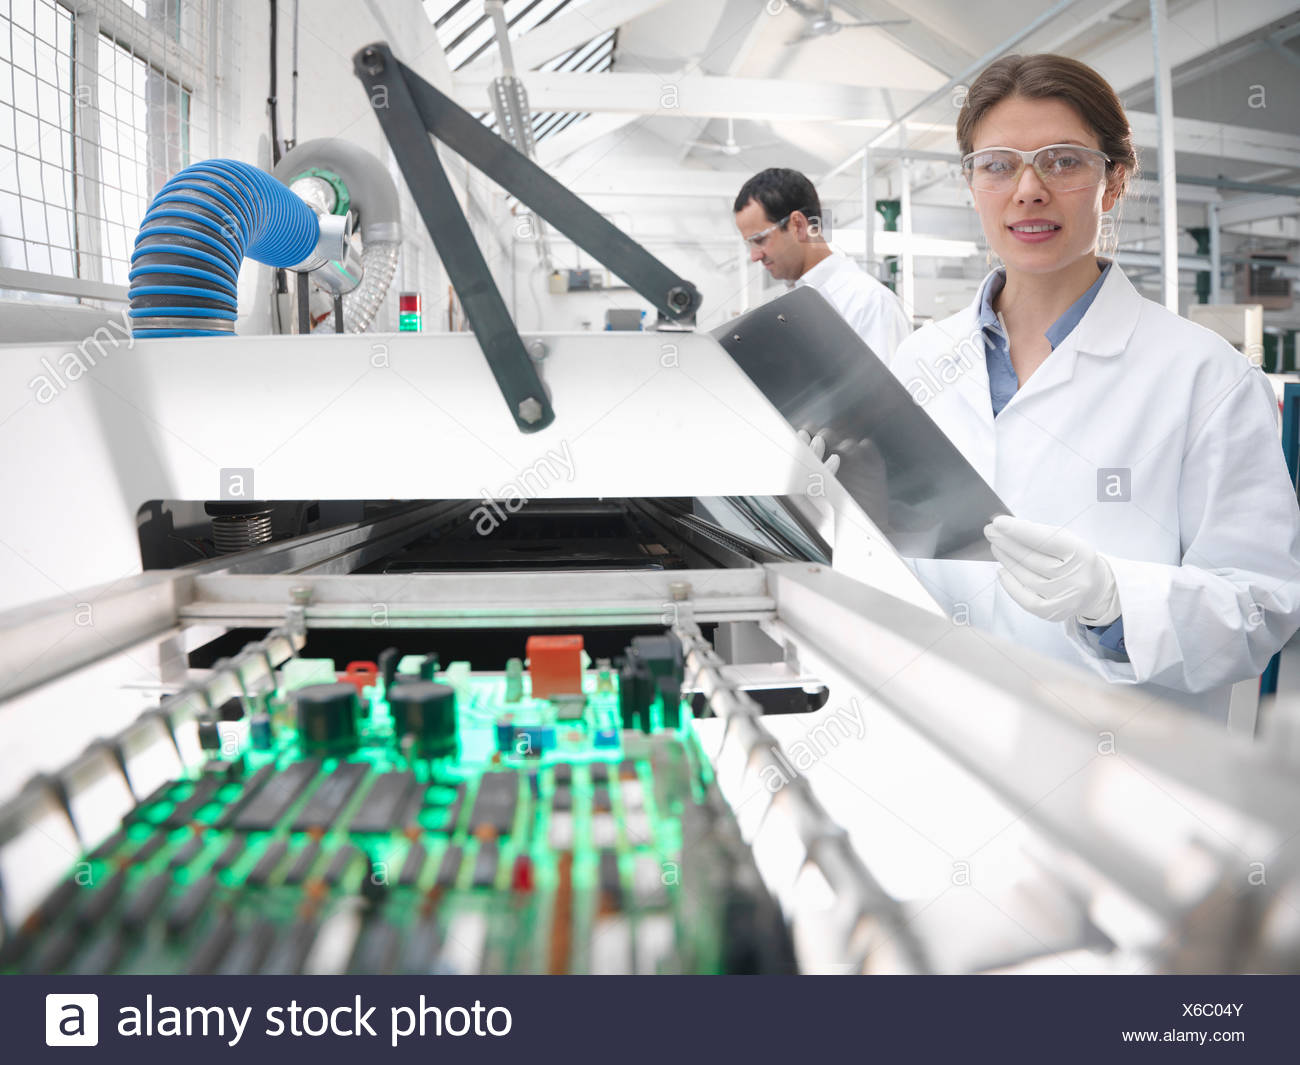 Workers with automated soldering machine - Stock Image